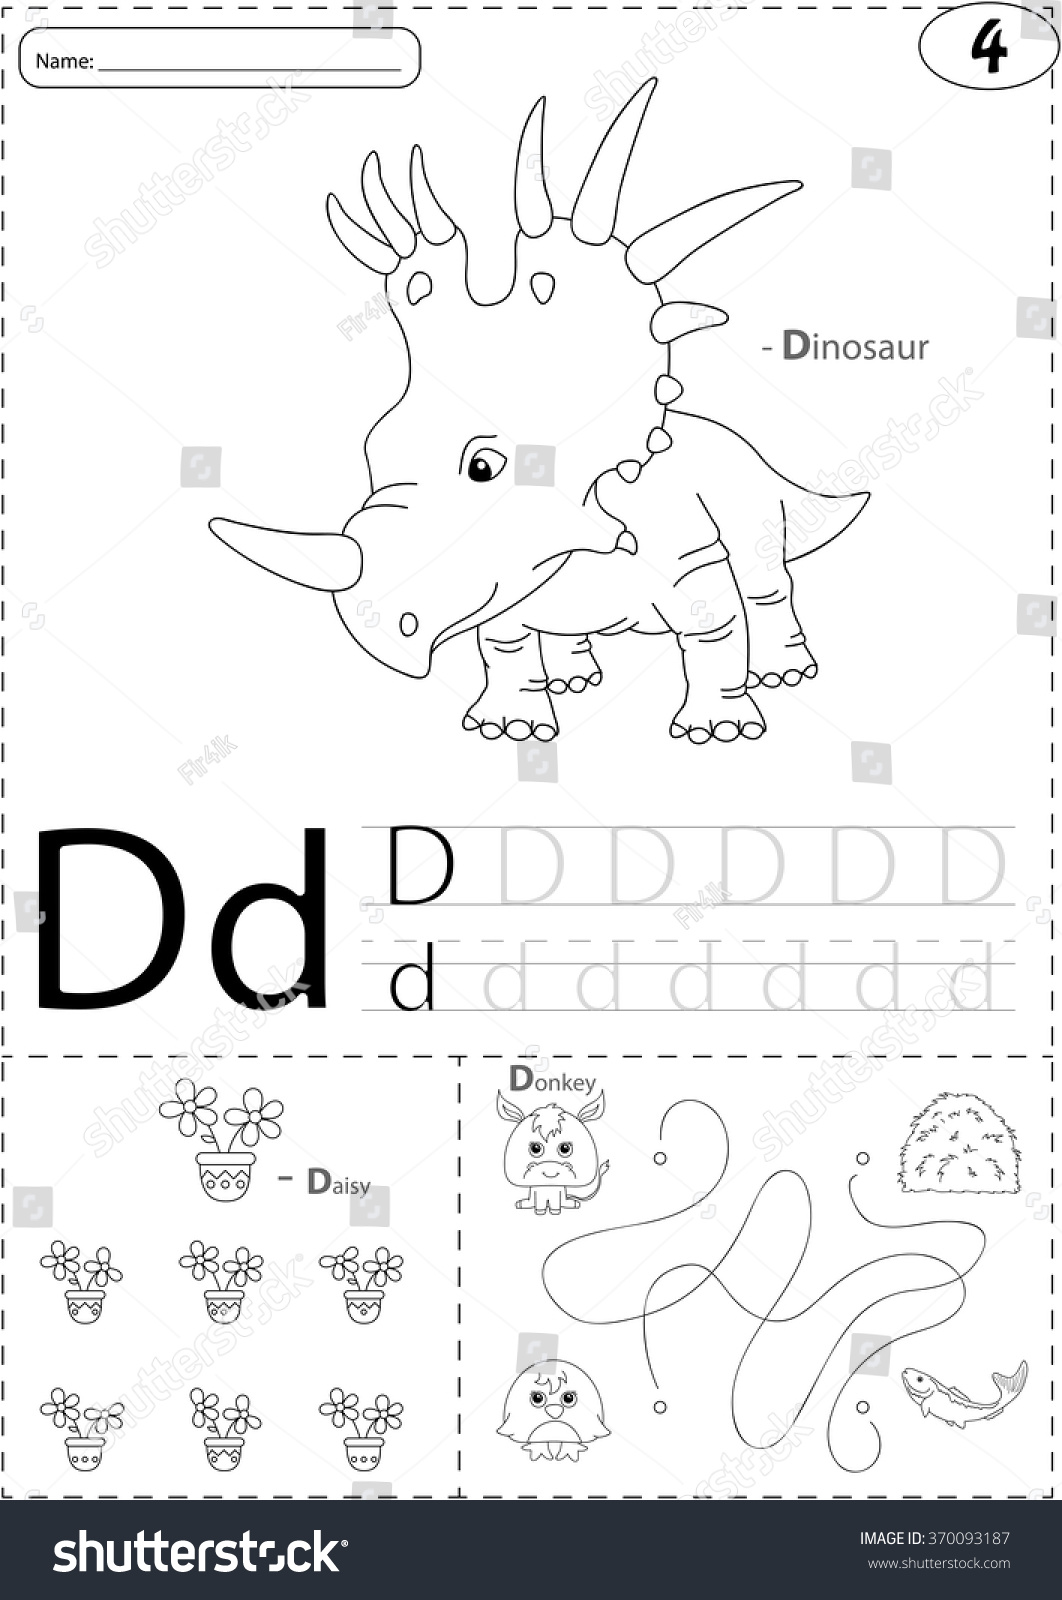 Cartoon Dinosaur Daisy And Donkey Alphabet Tracing Worksheet Writing A Z Coloring Book